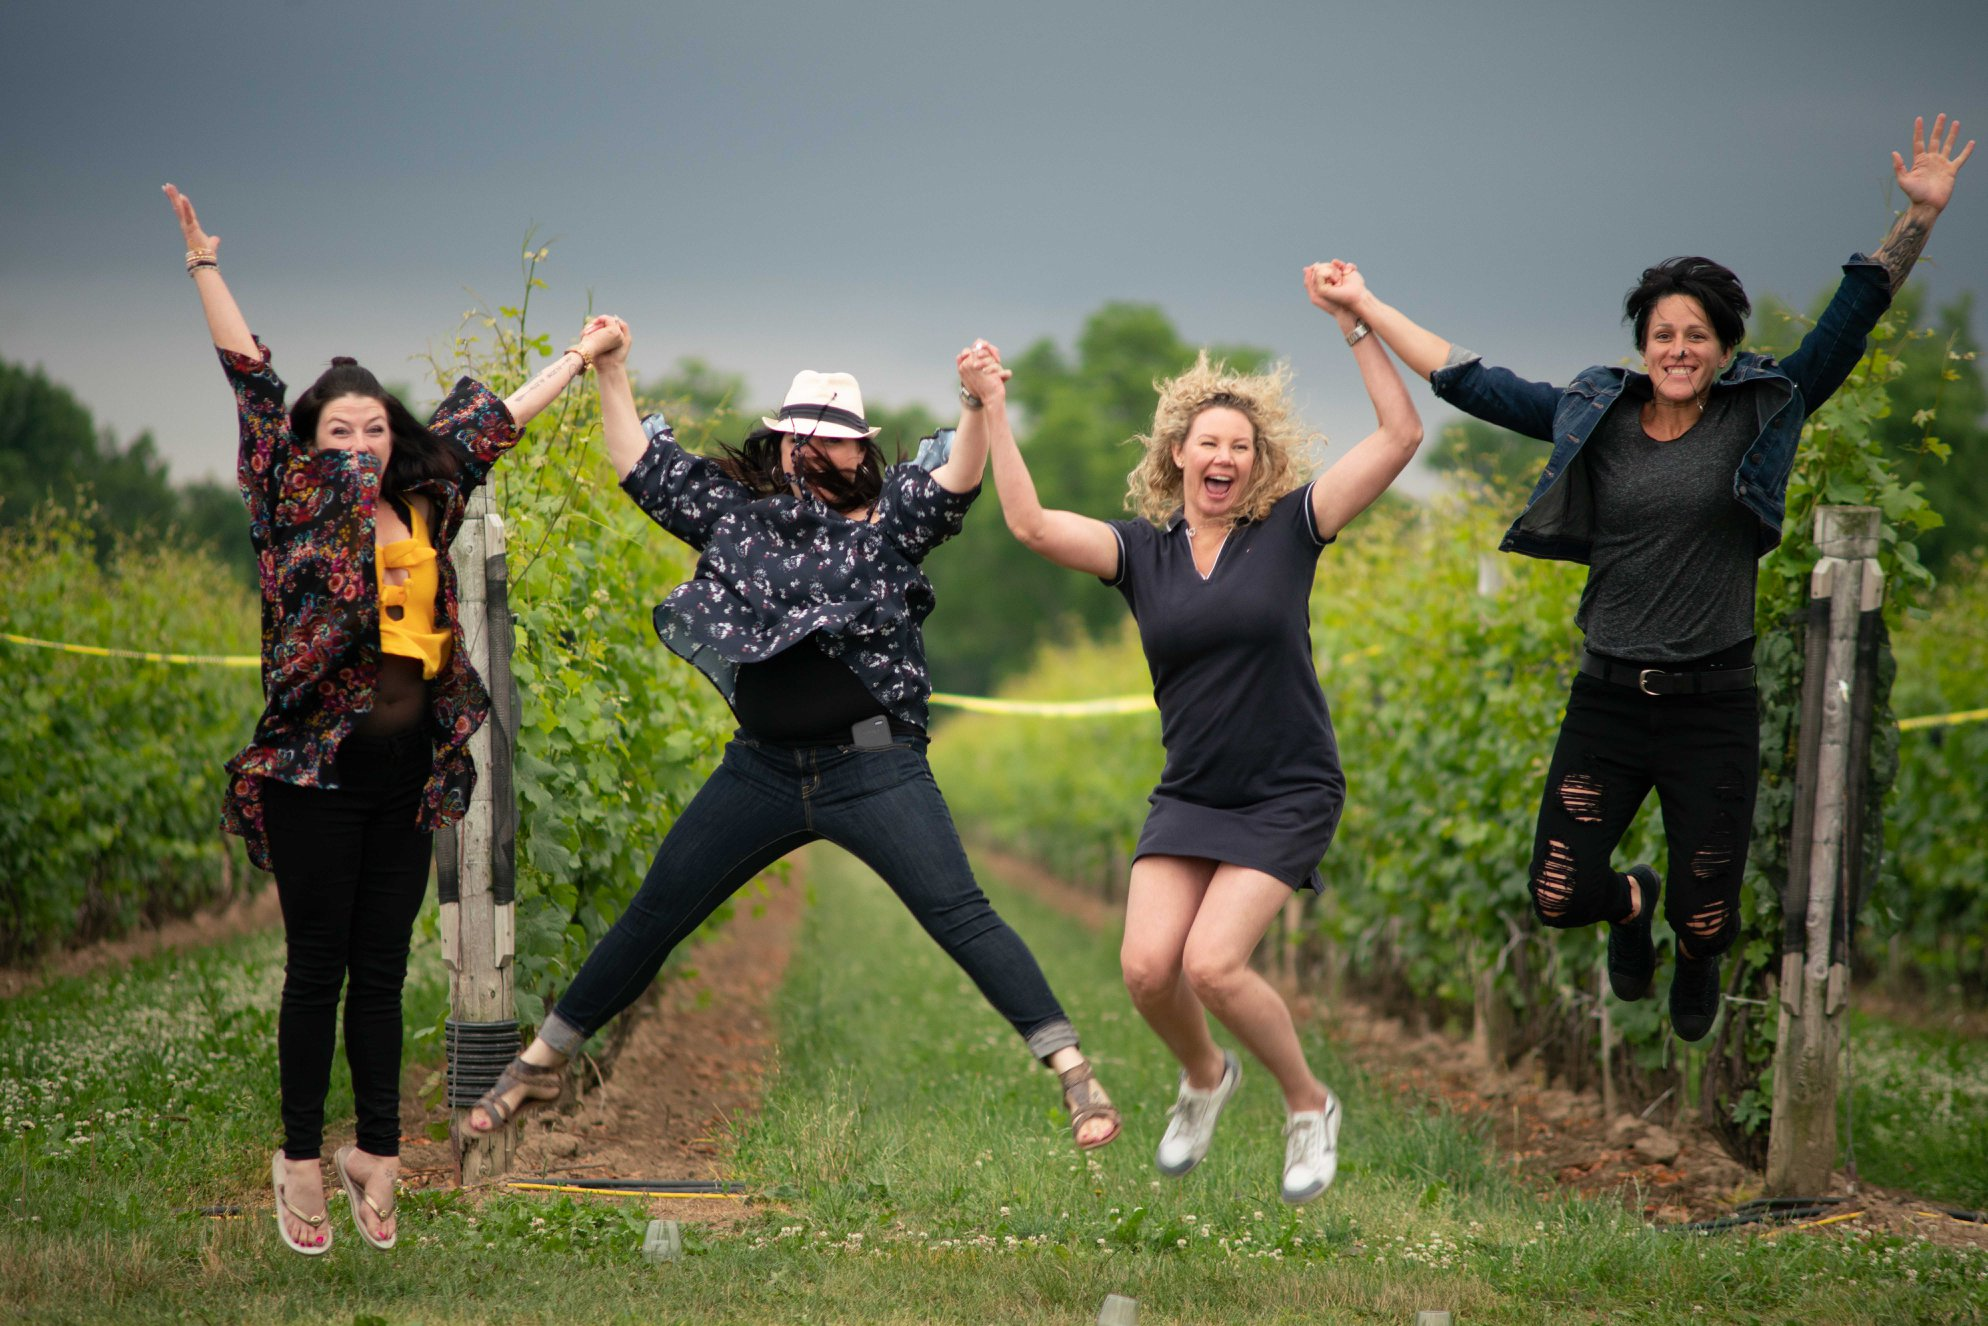 People jumping in a vineyard